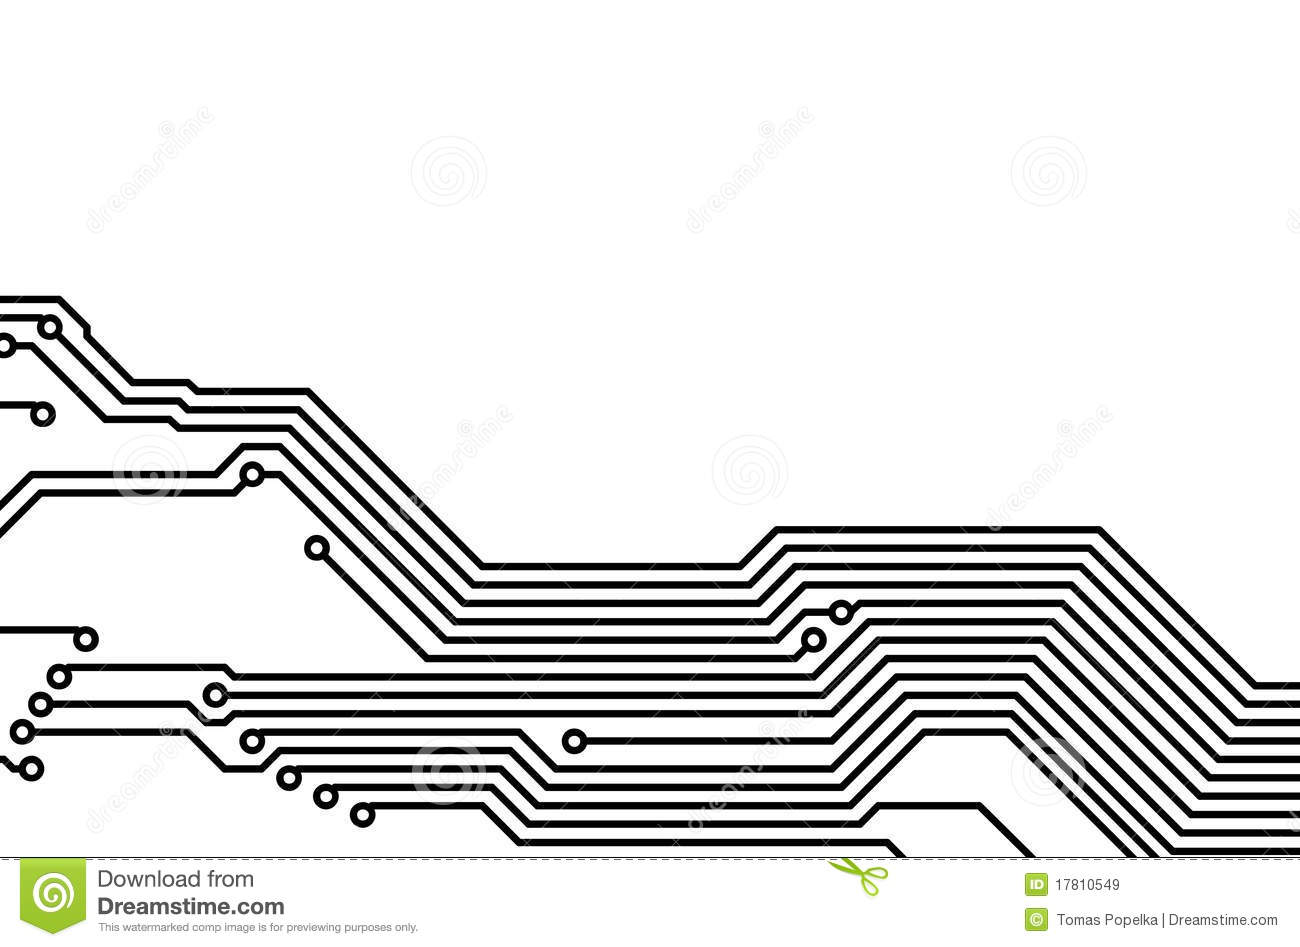 hight resolution of circuit clipart pcb printed circuit board 6